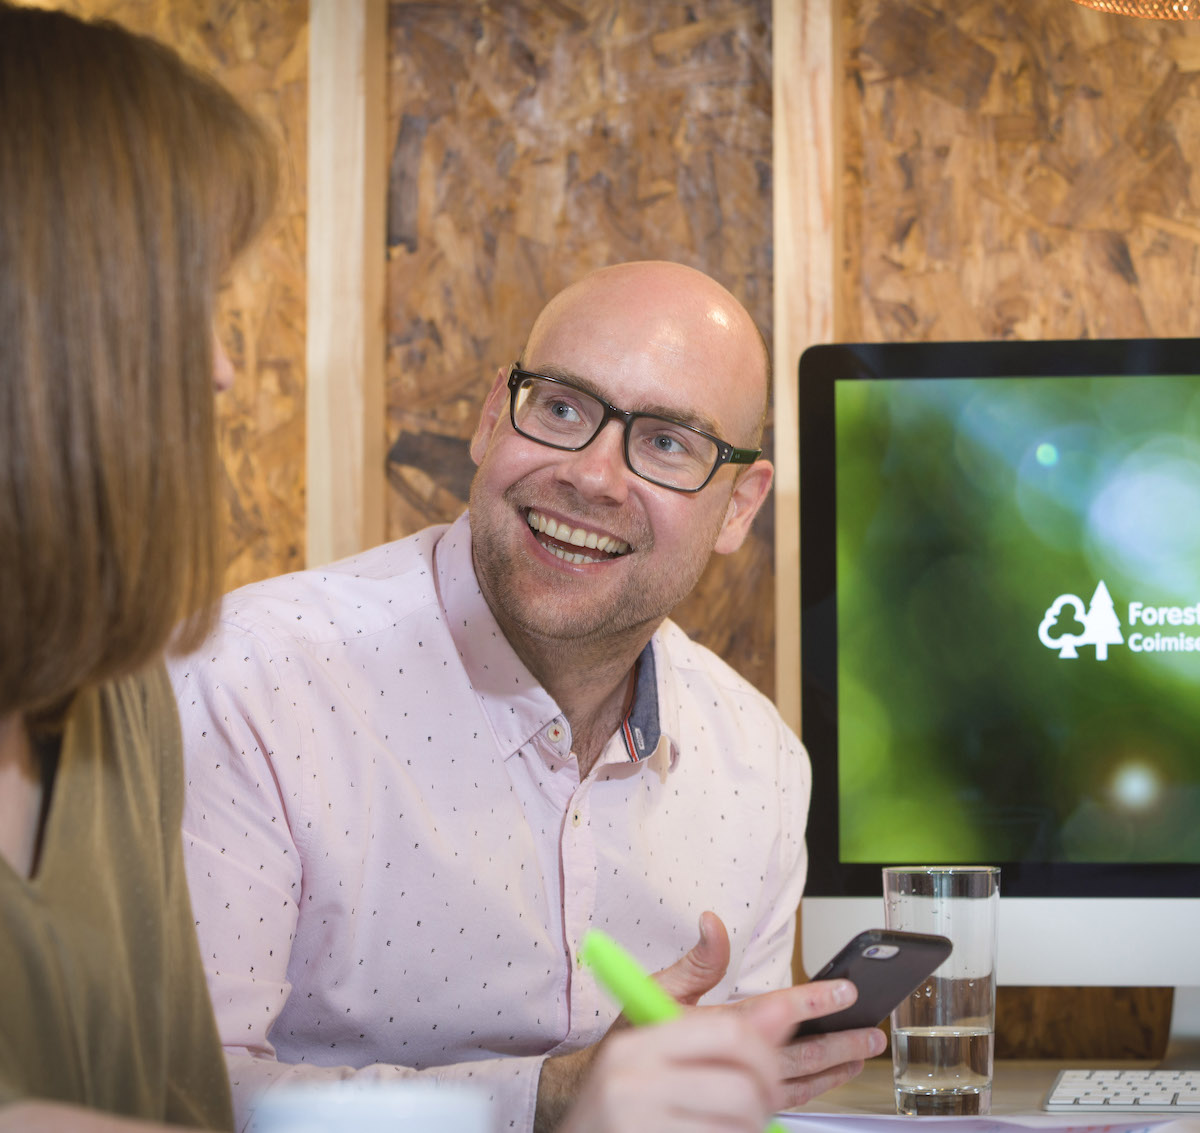 Running a design agency from home with Firefly Design